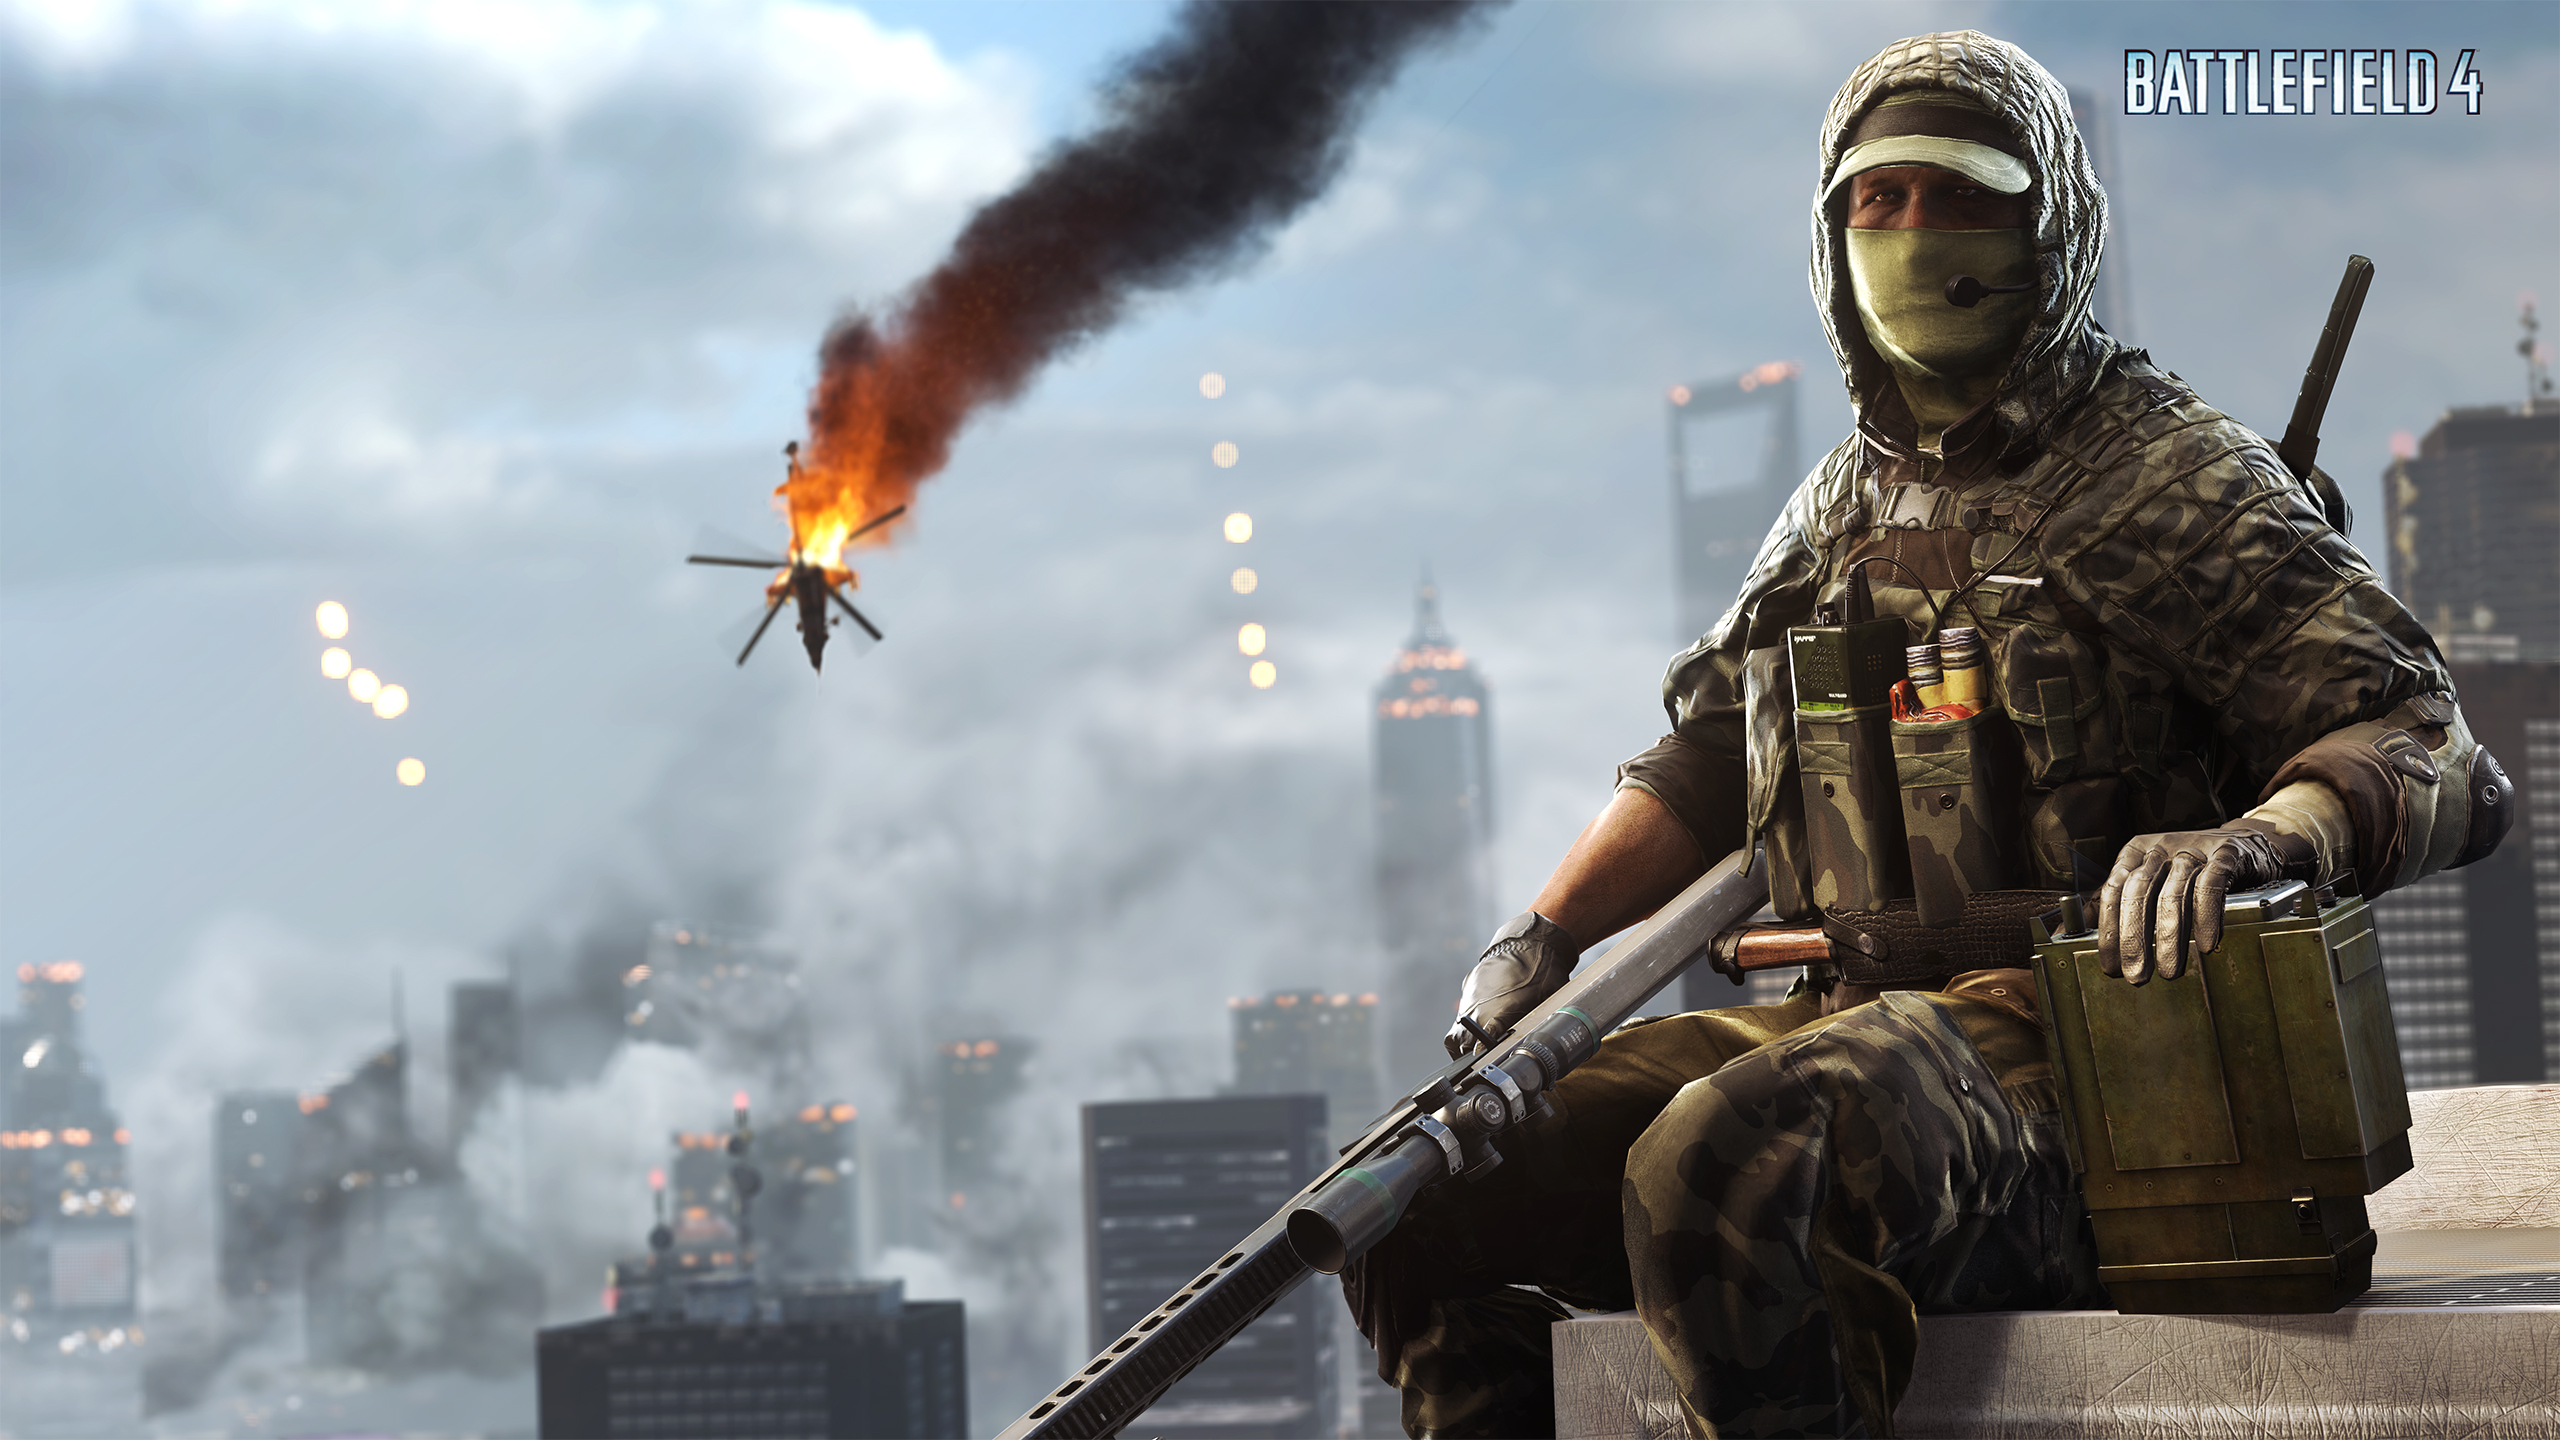 Battlefield 4 wallpapers pictures images - Bf4 wallpaper ...